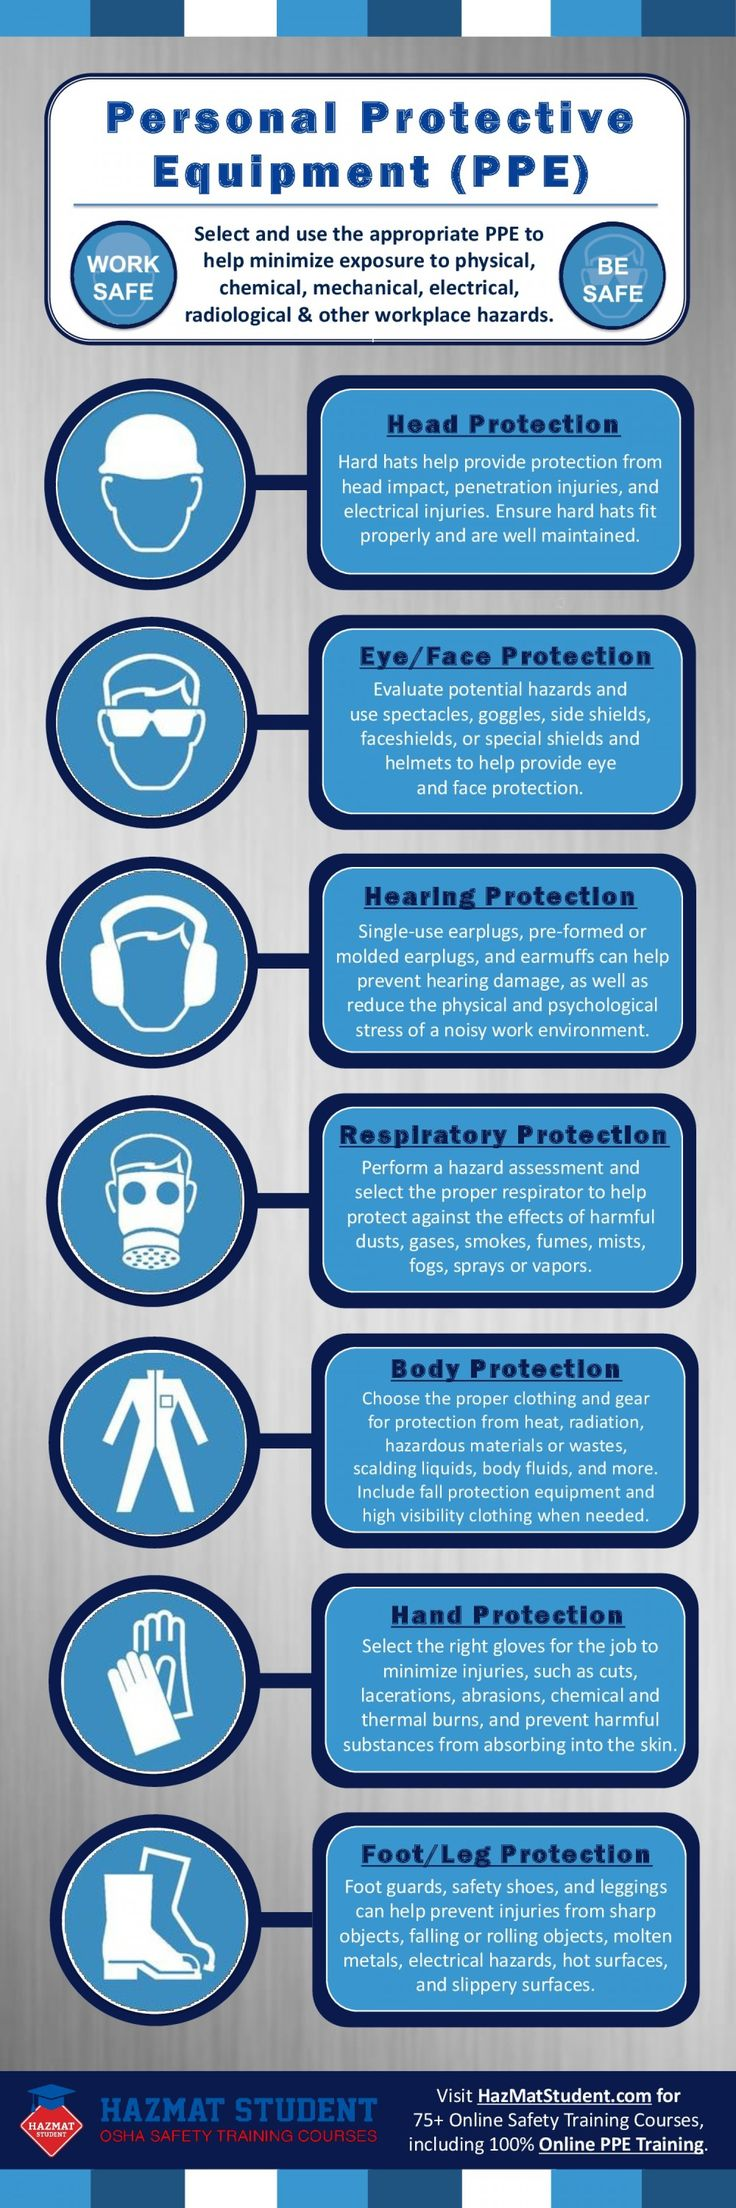 Personal Protective Equipment (PPE) Infographic